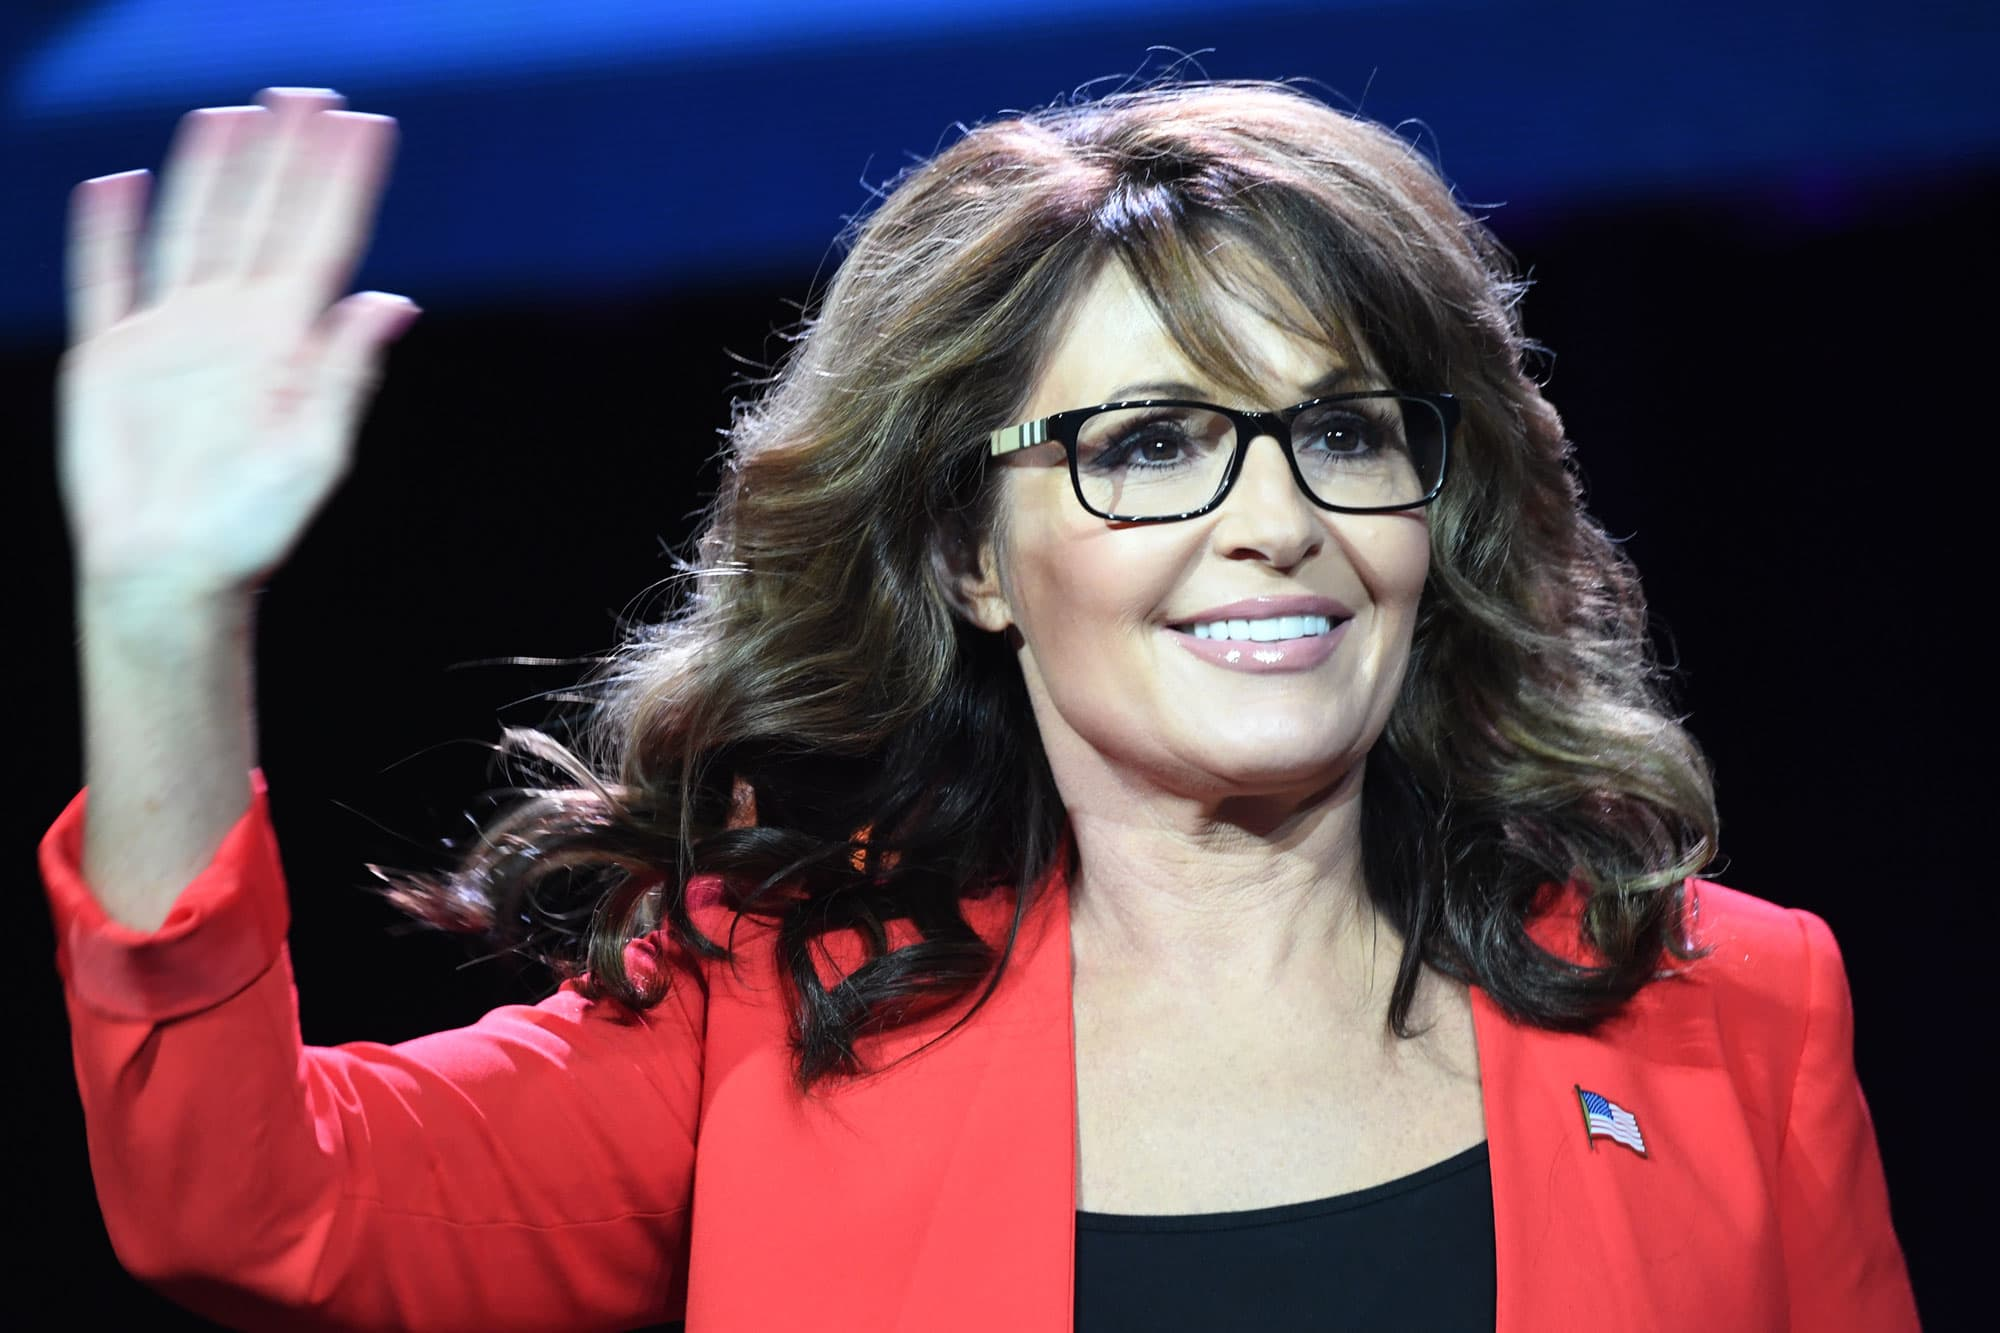 TheFappening Sarah Palin nudes (28 photos), Pussy, Leaked, Twitter, in bikini 2015